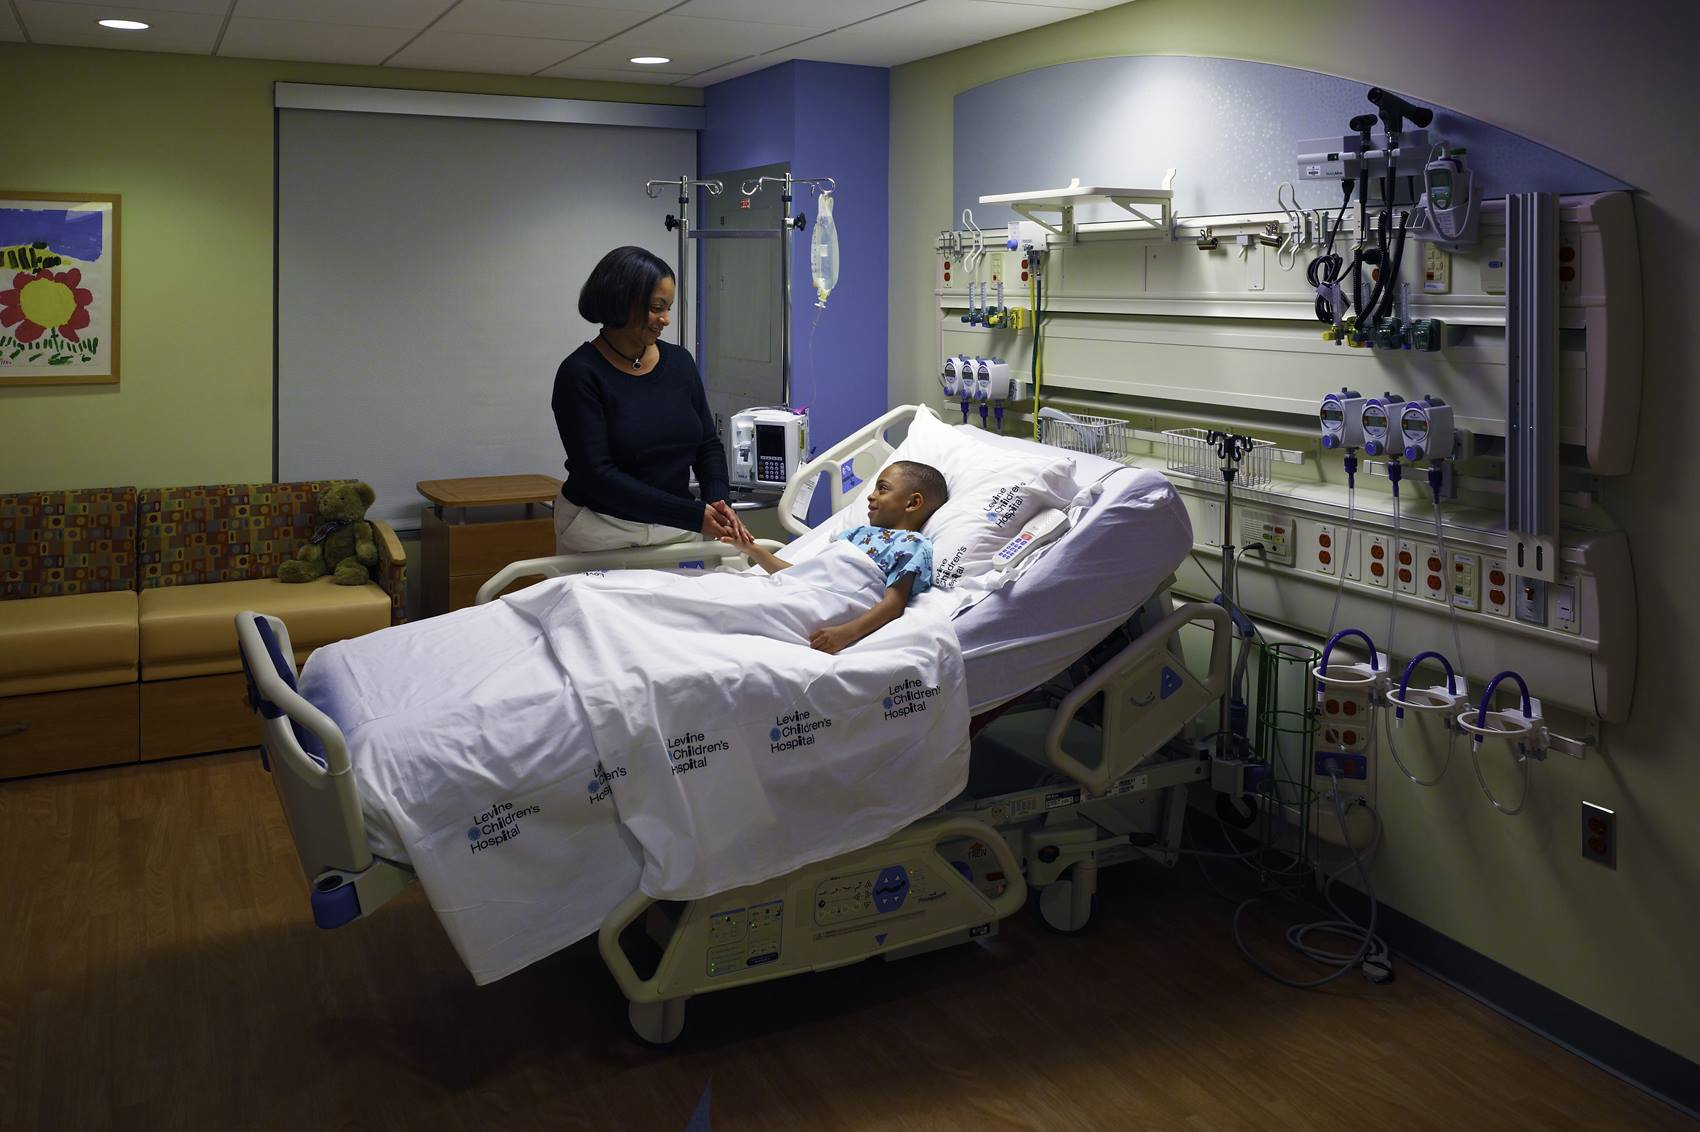 A patient room at Levine Children's Hospital